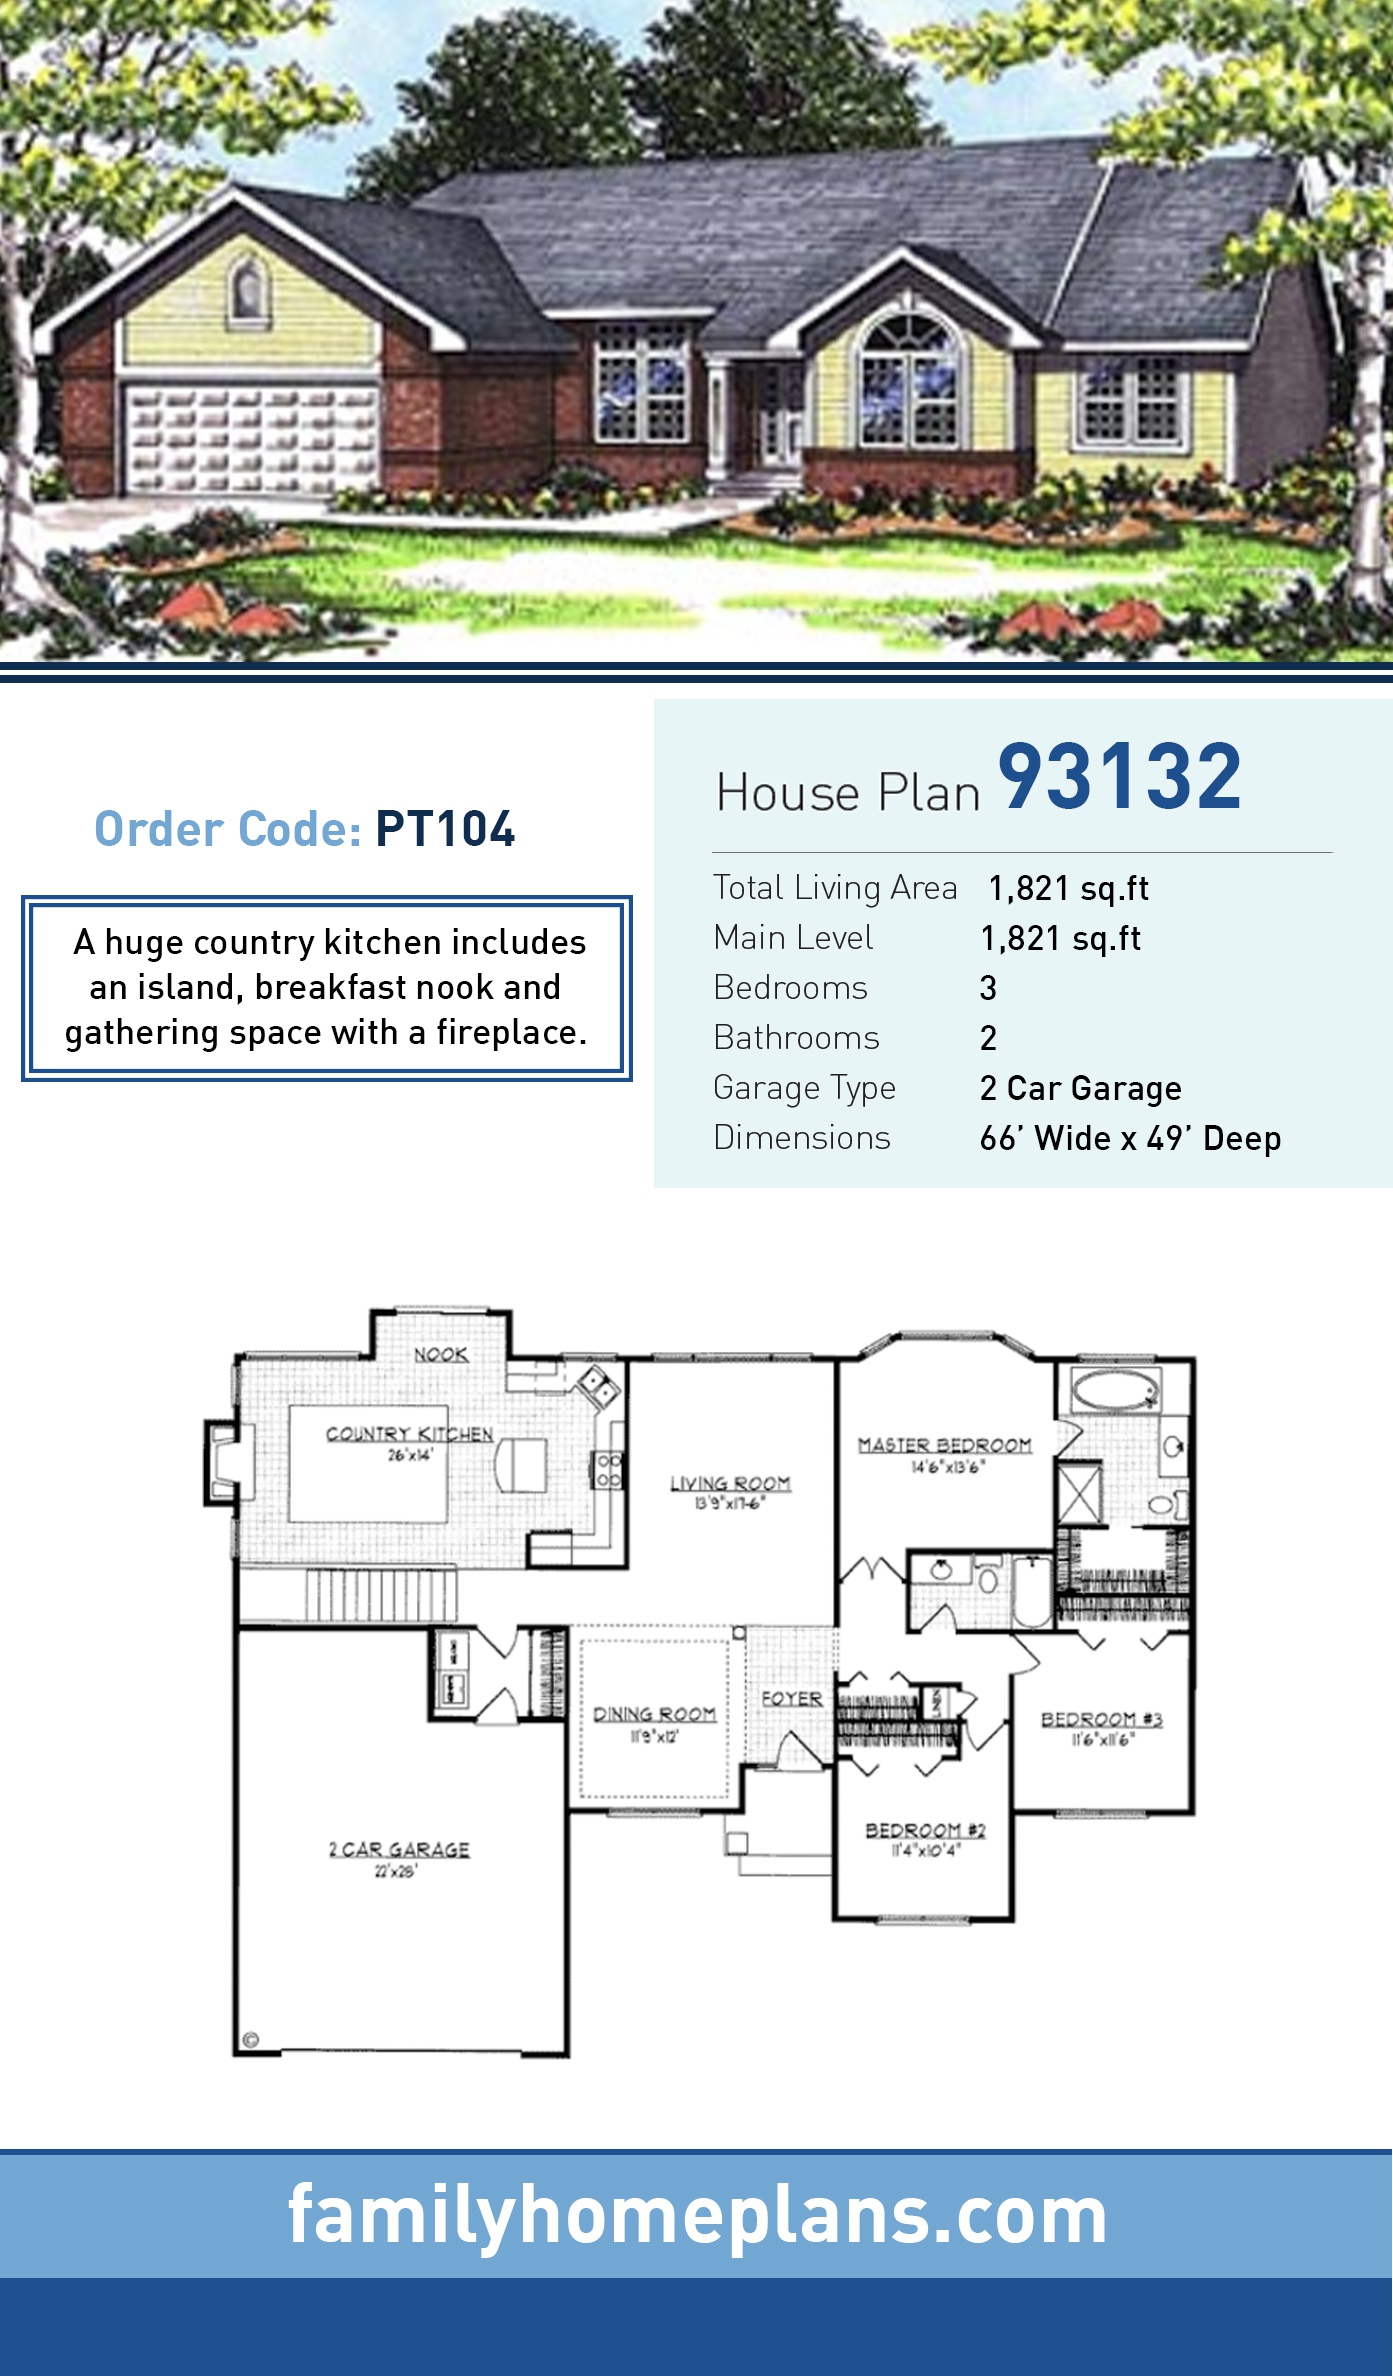 Ranch House Plan 93132 with 3 Beds, 2 Baths, 2 Car Garage